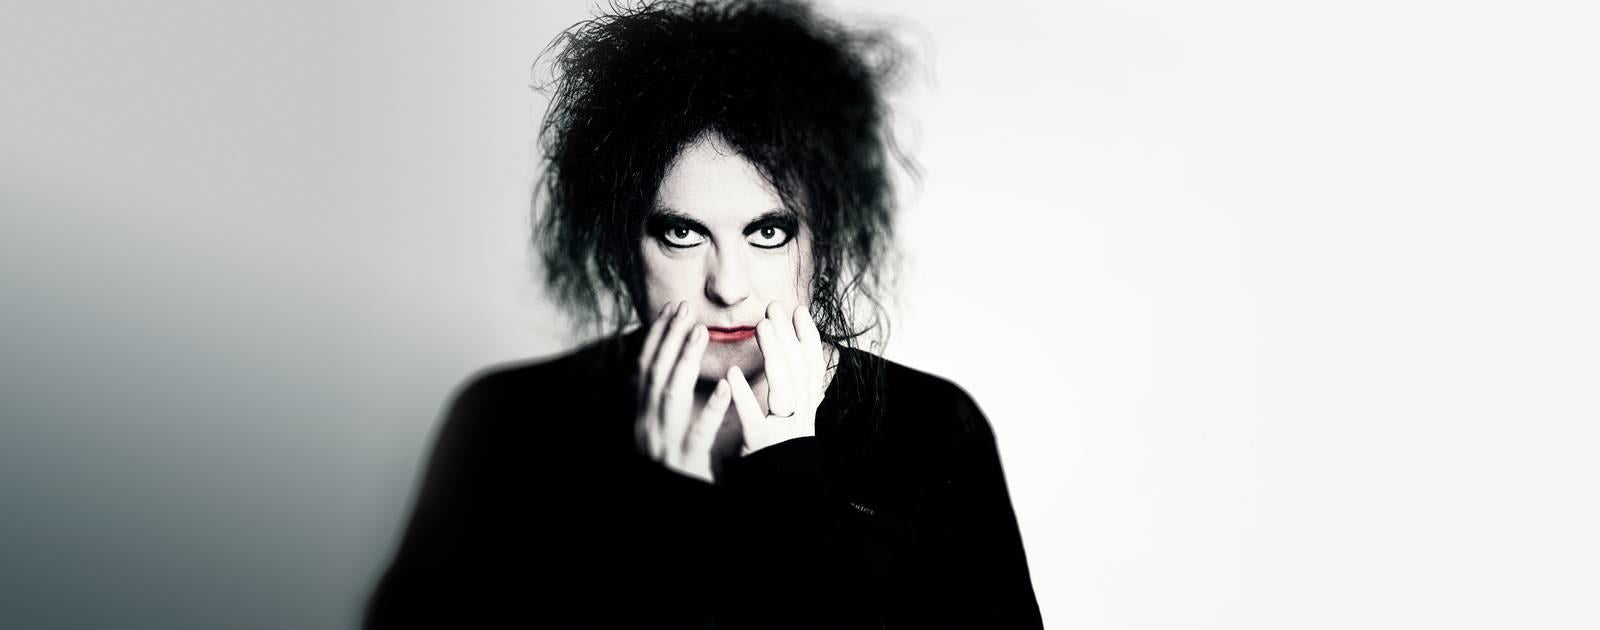 Robert Smith's Meltdown